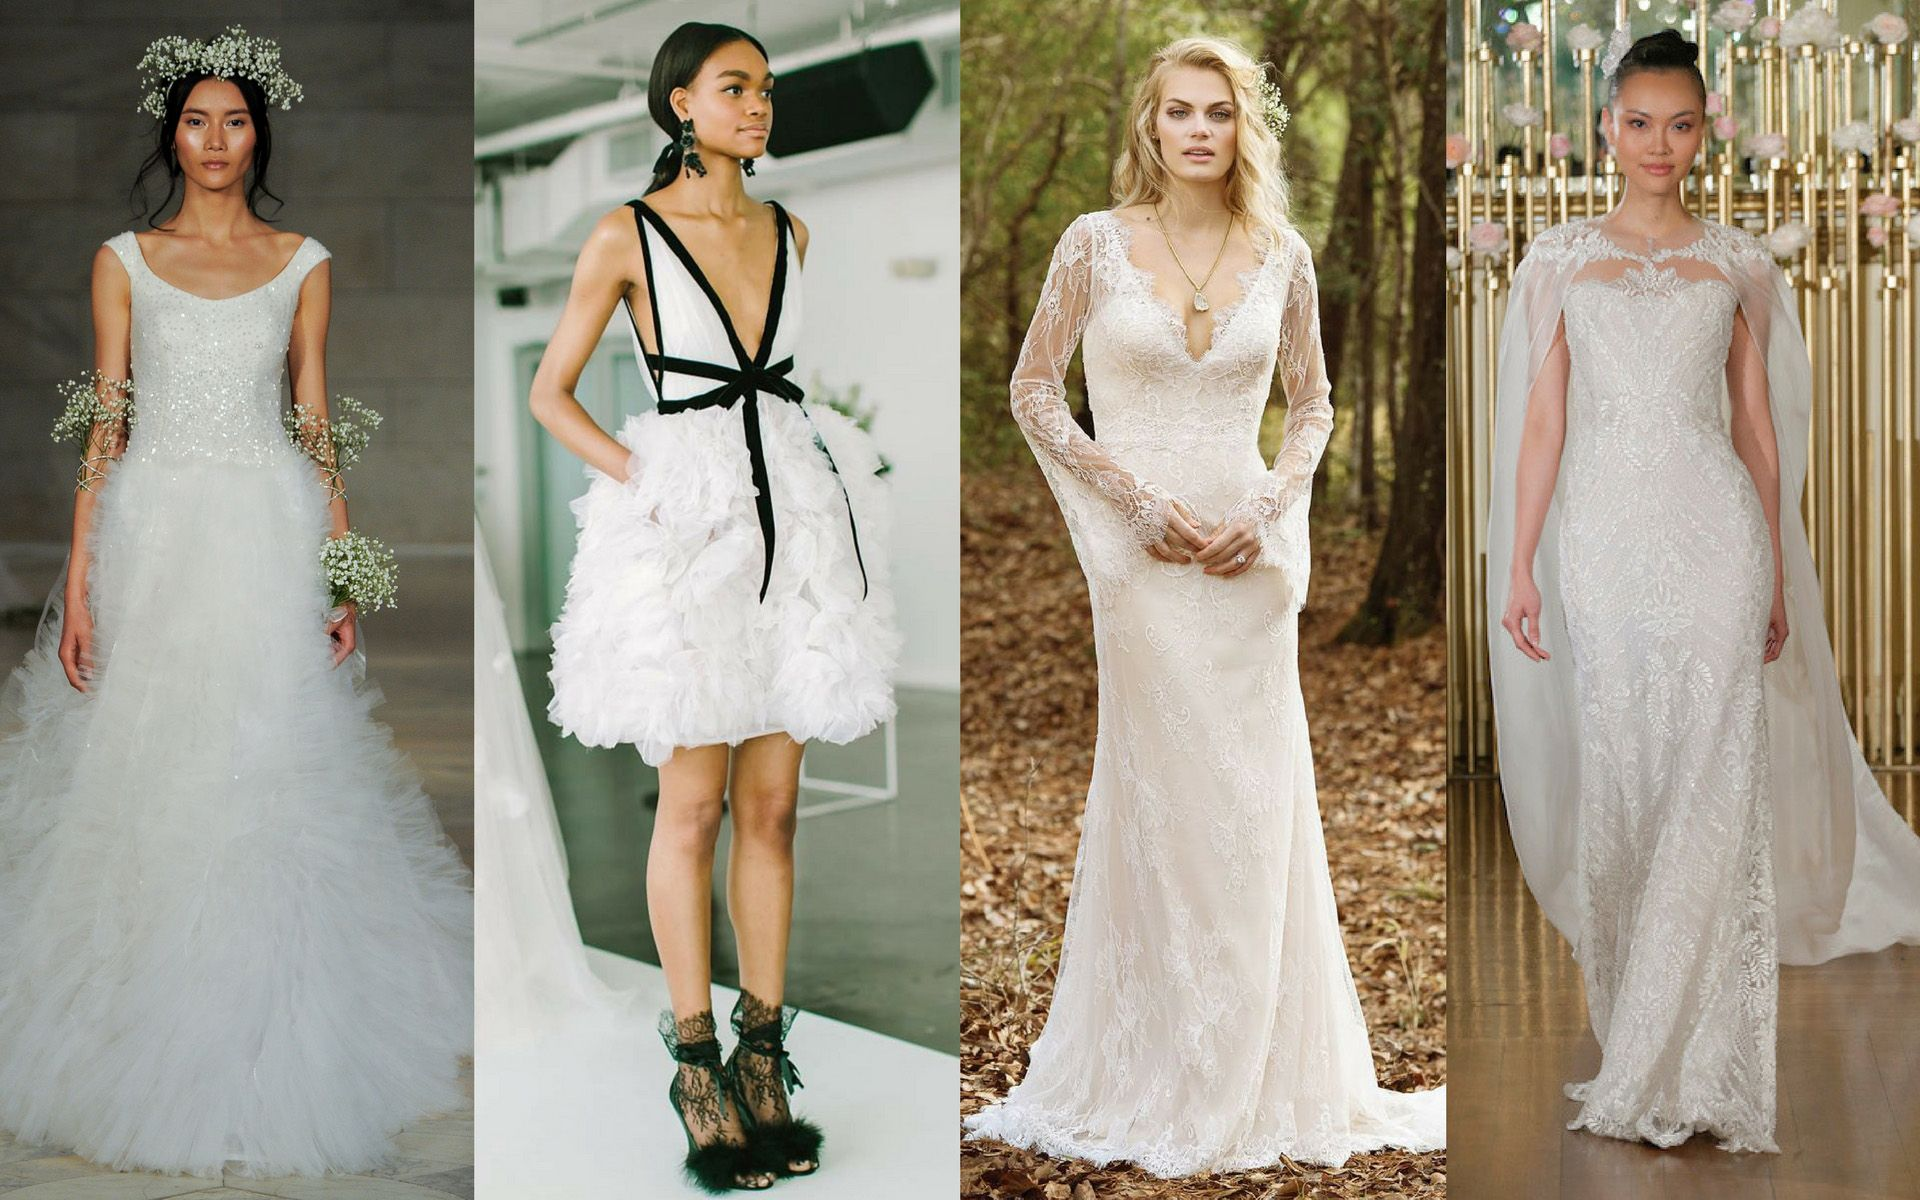 5 Wedding Gown Trends That Have Stood The Test Of Time